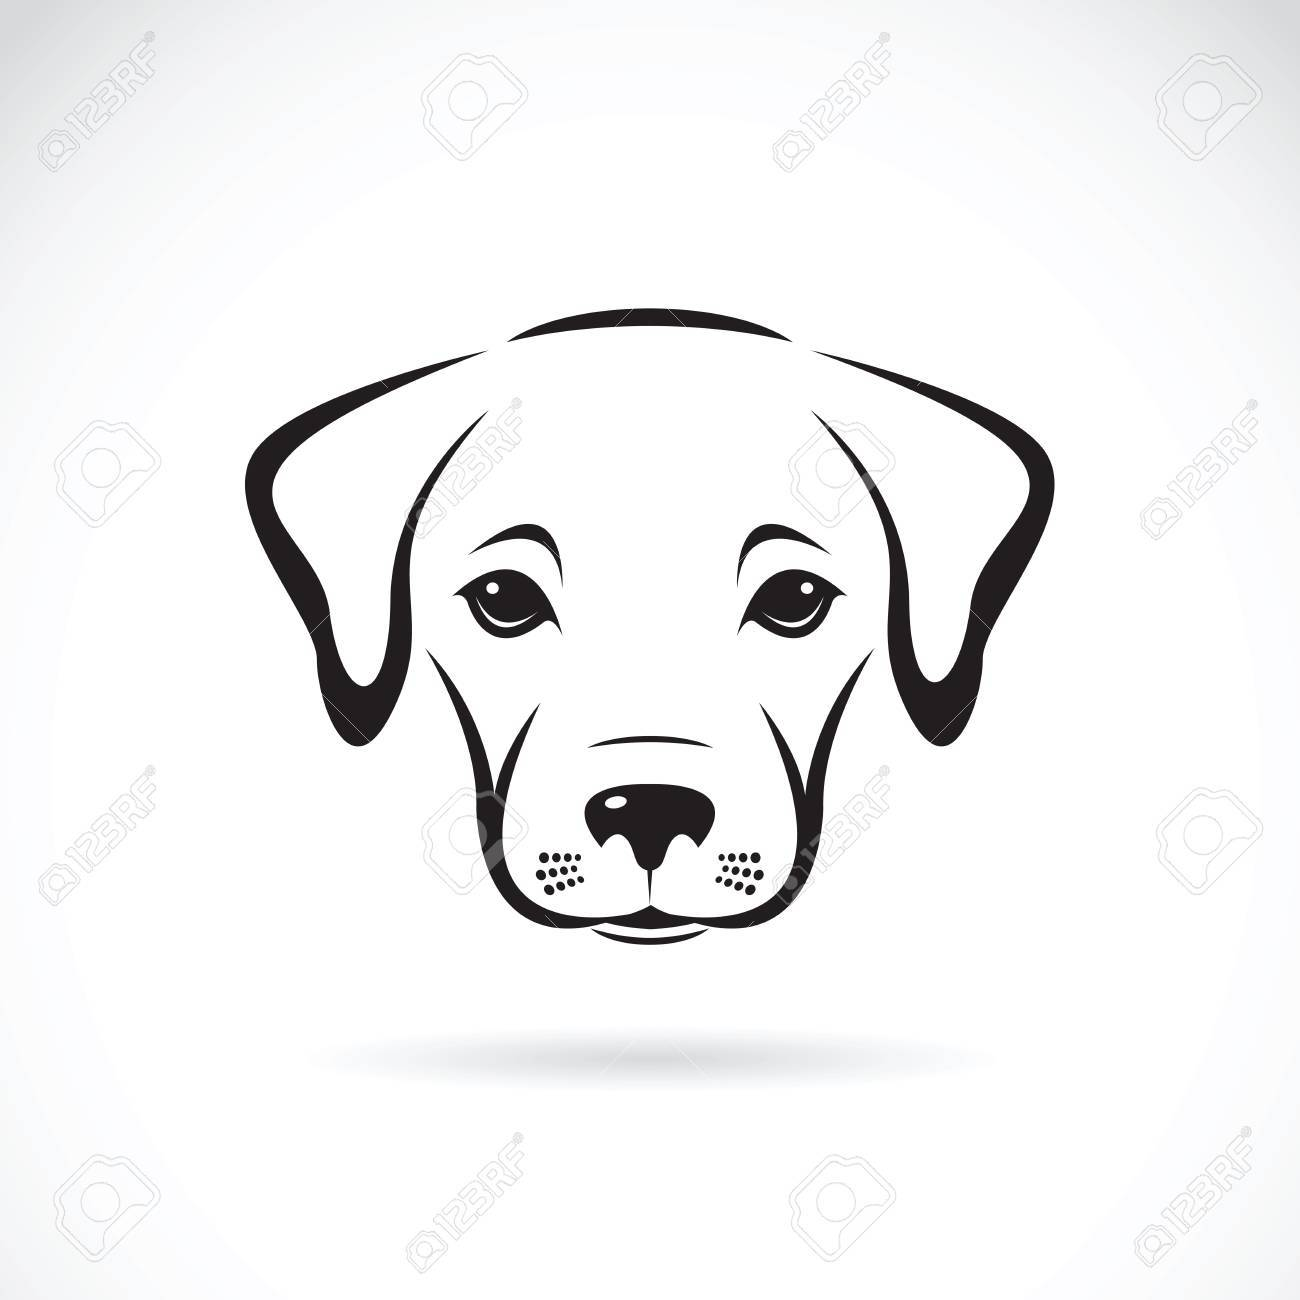 Clipart puppy face banner download Vector of a labrador puppy face on white background. Dog. Pet ... banner download